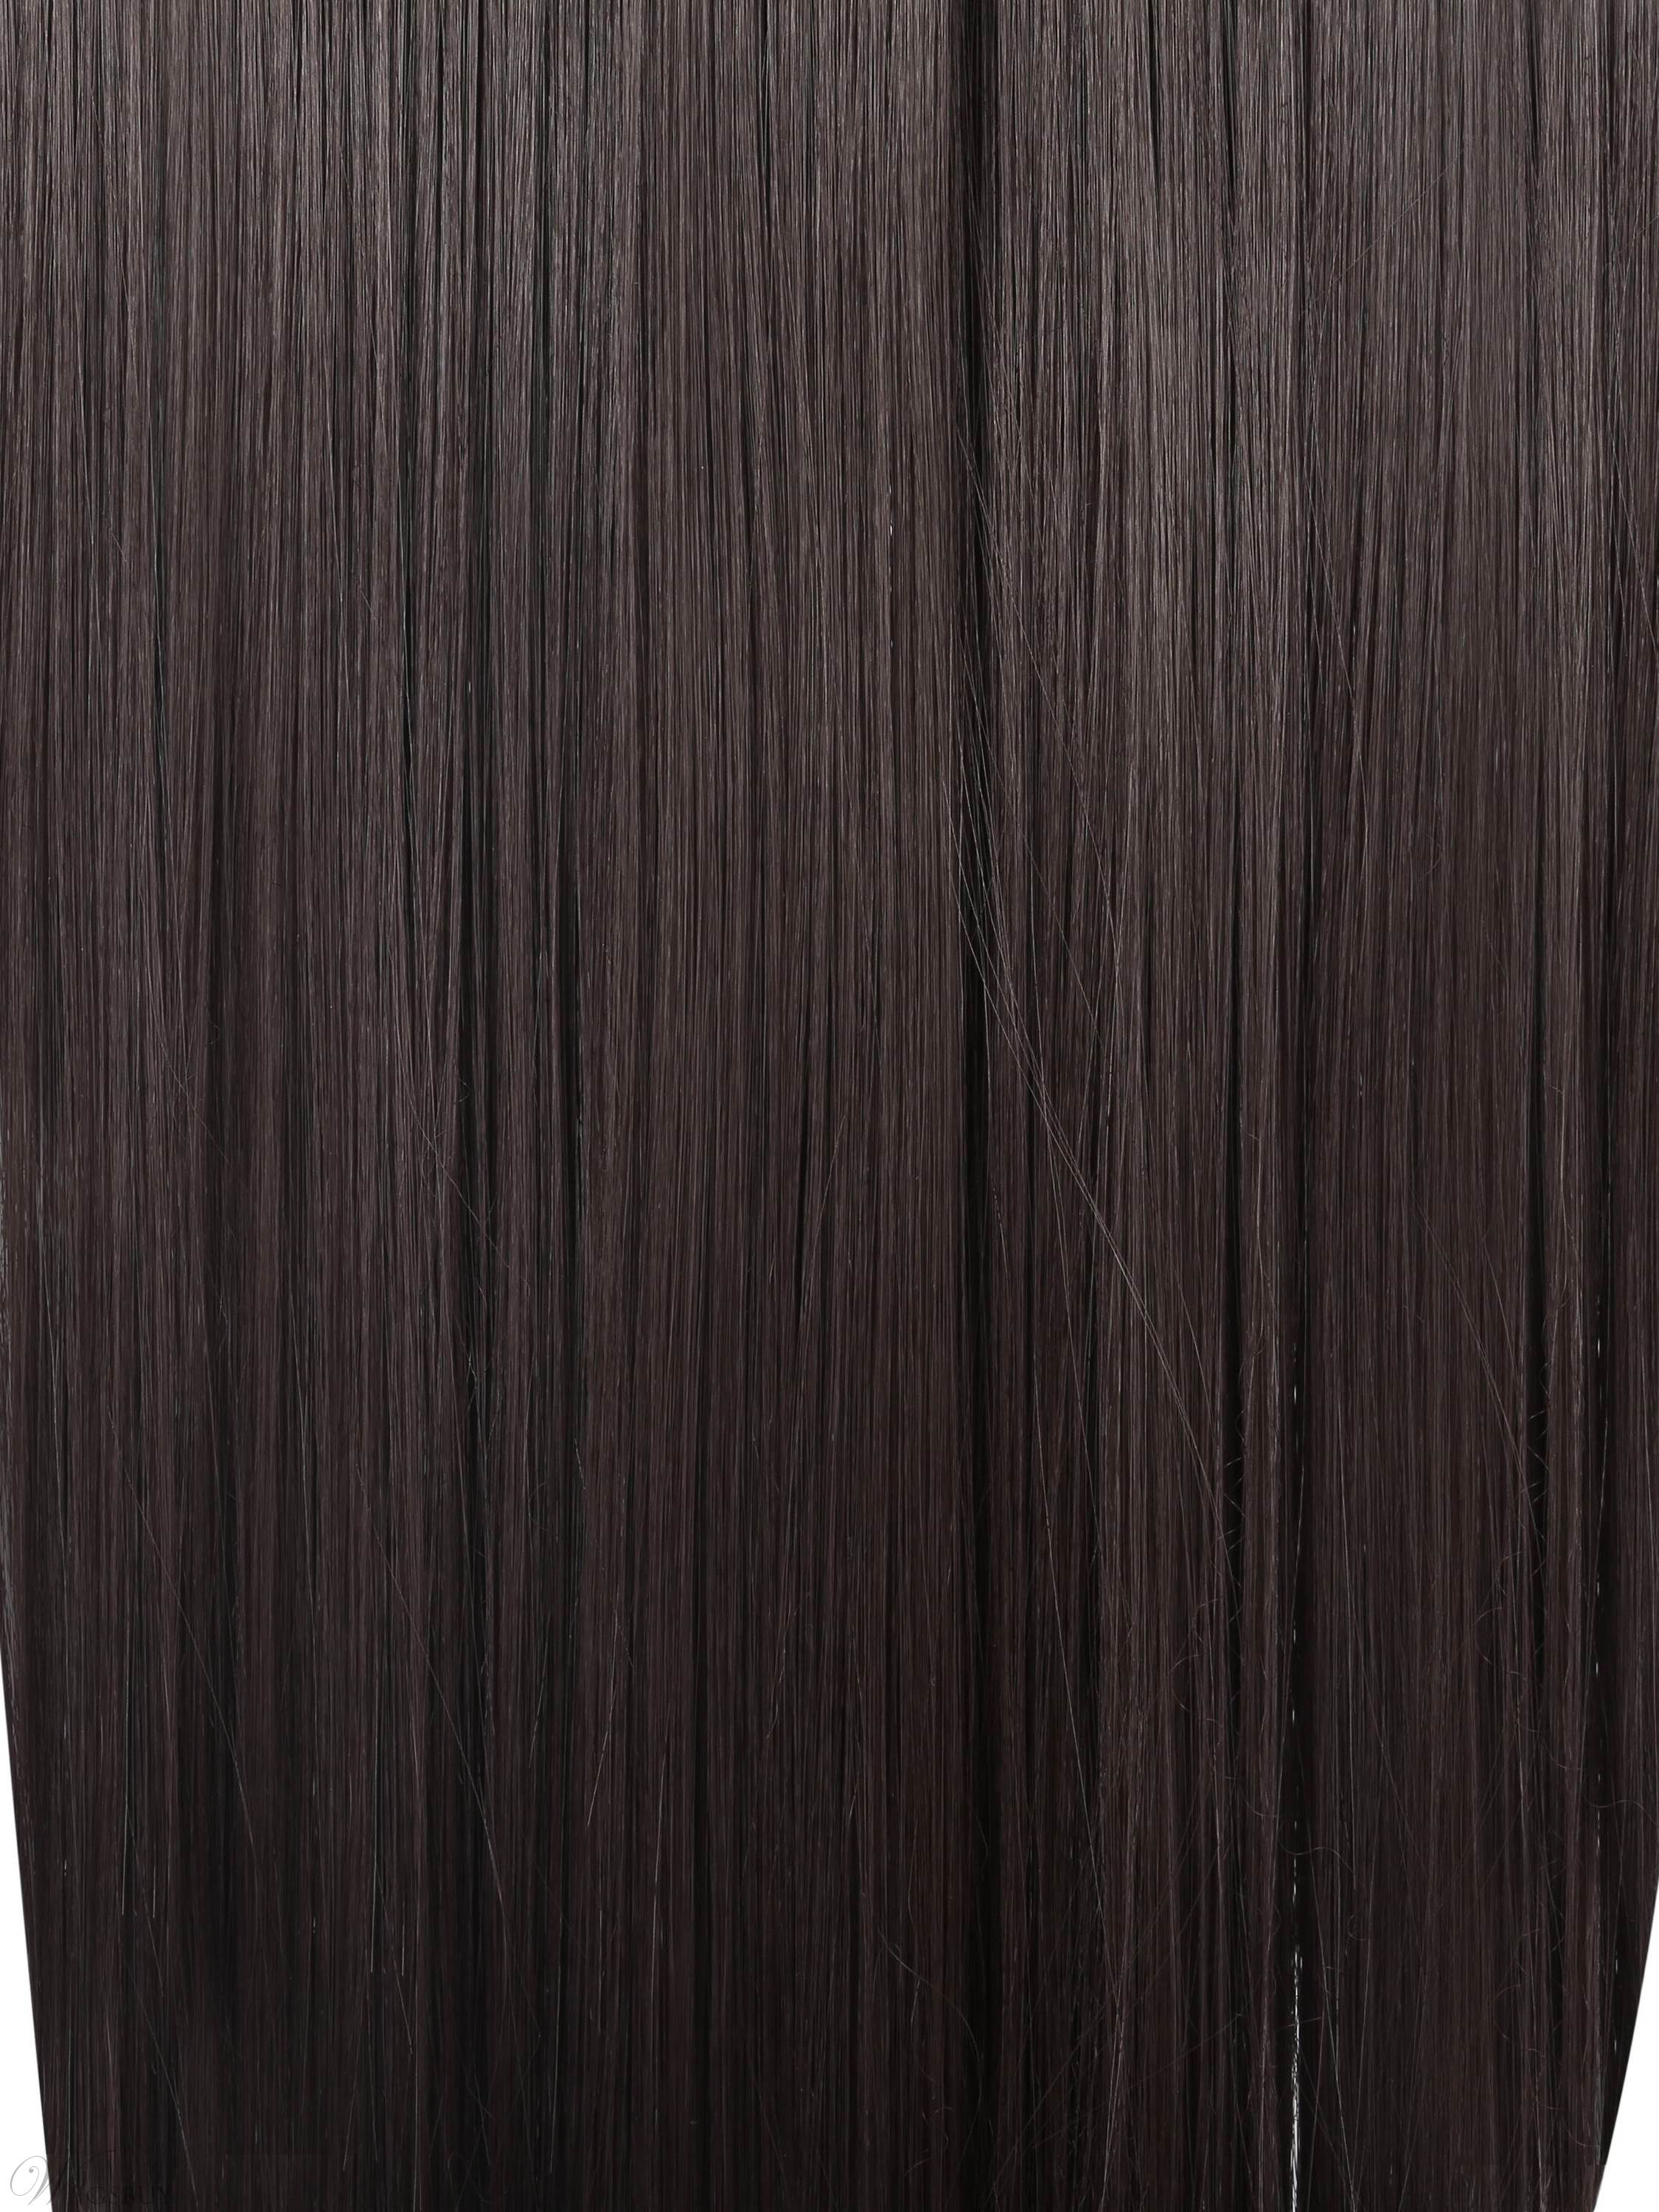 Clip In Remy Human Hair Extensions With Bleach Blonde 7pcs 70g 20